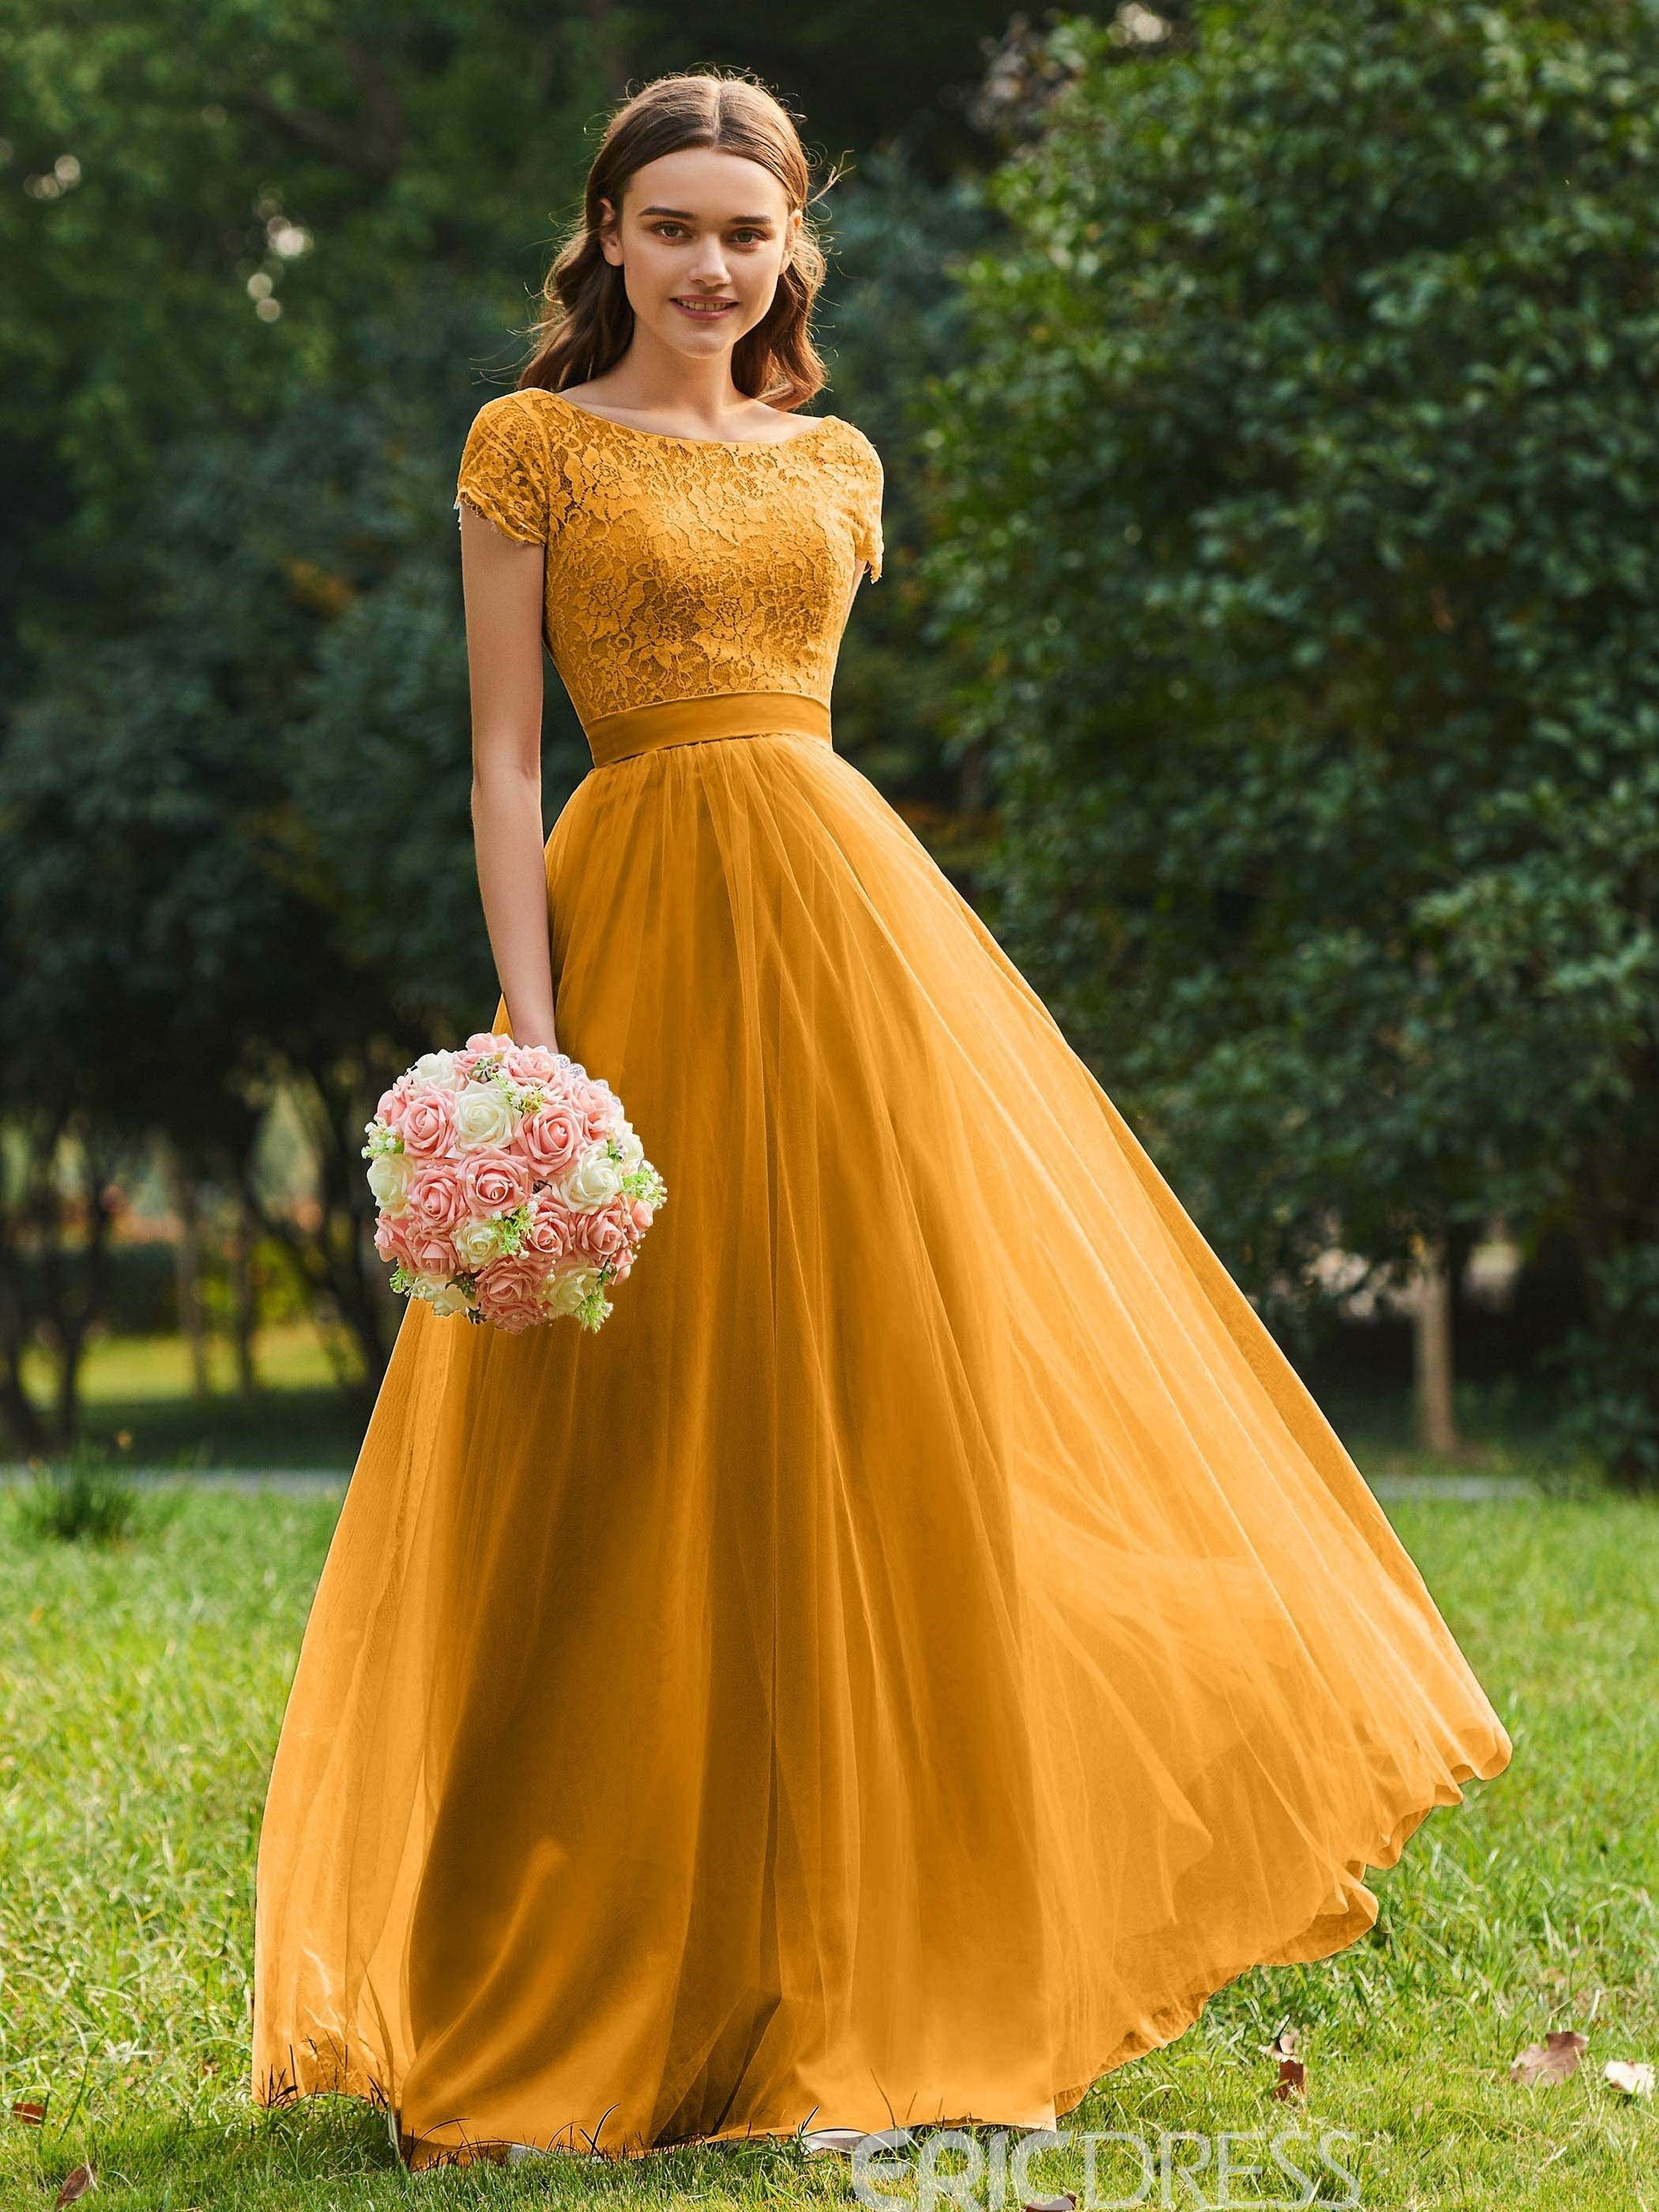 Ericdress Short Sleeves A Line Tulle Bridesmaid Dress 13092887 Ericdress Com Ericdre In 2020 Yellow Bridesmaid Dresses Tulle Bridesmaid Dress Lace Bridesmaid Dresses